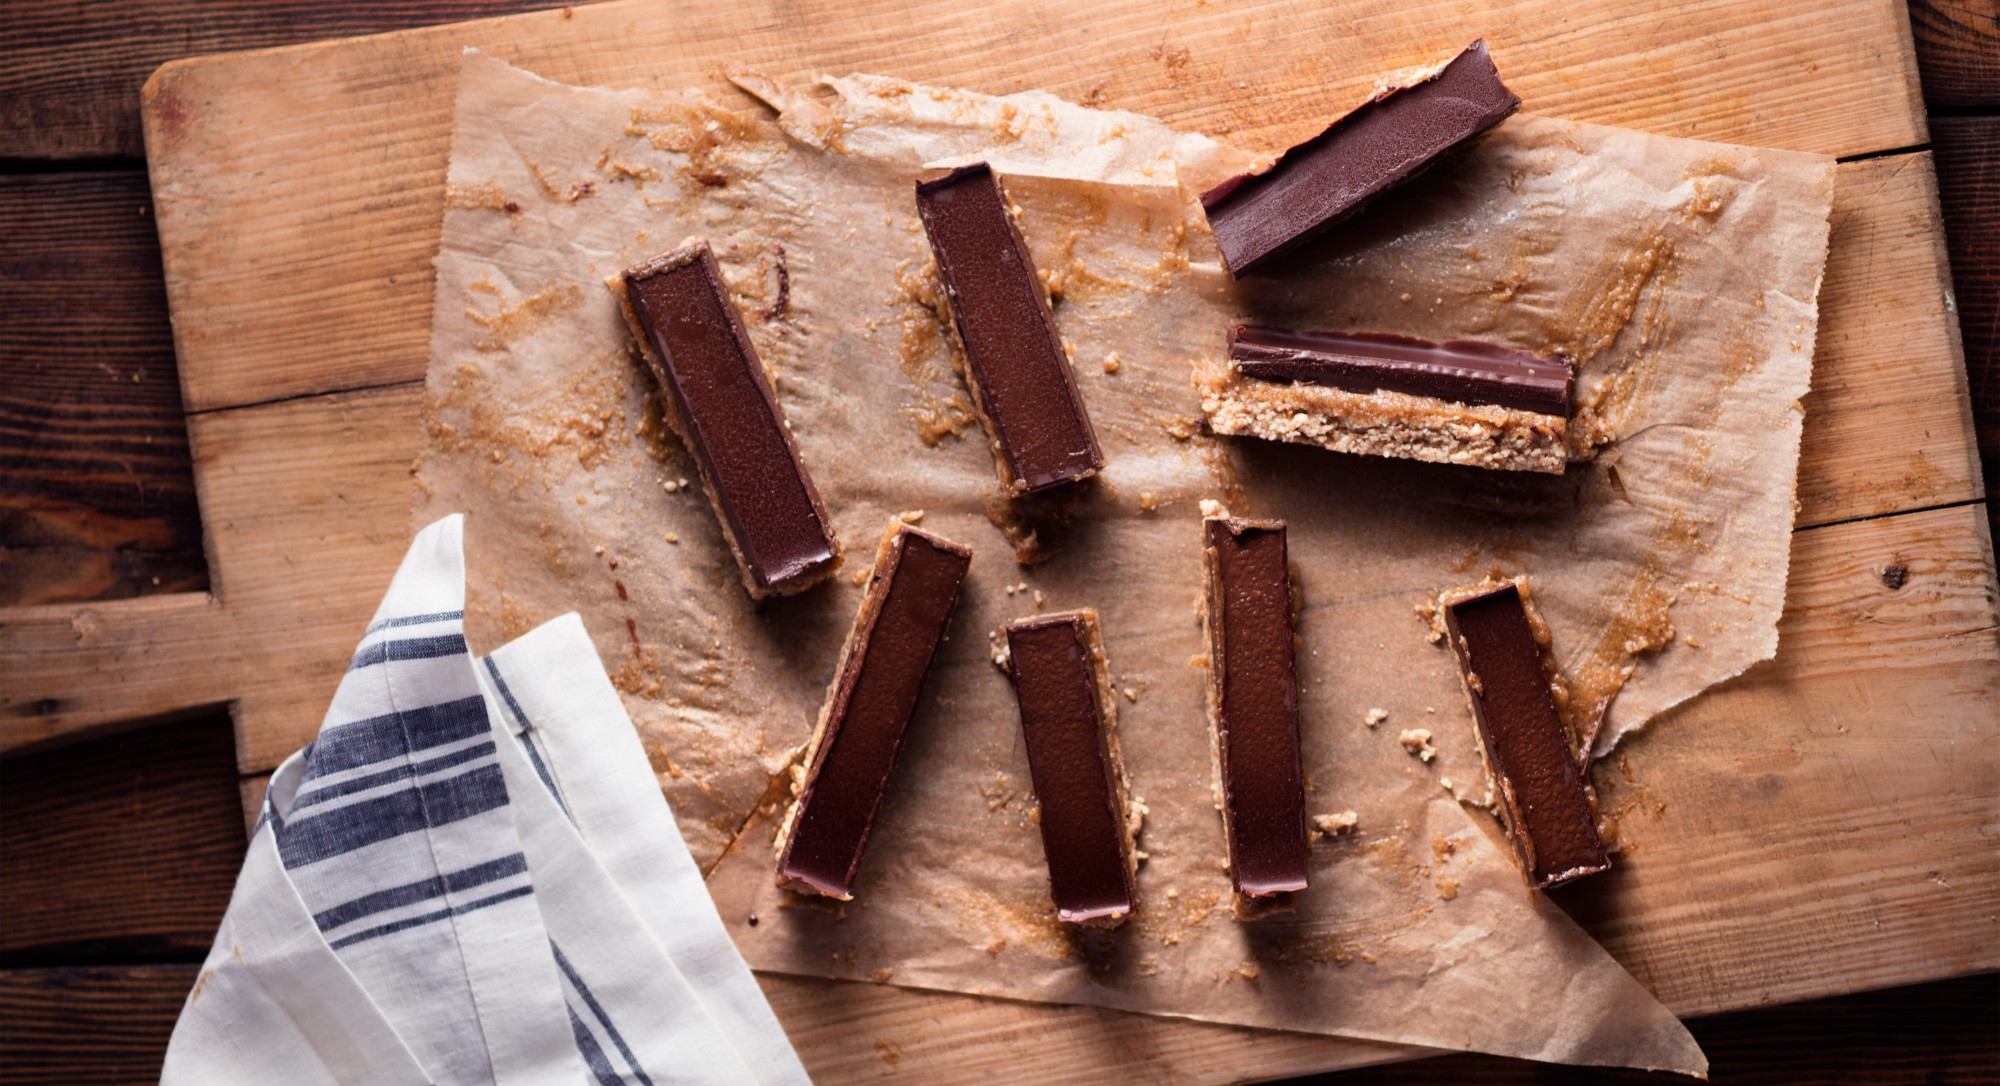 Cookies, Caramel, and Chocolate—We've Healthified a Classic Candy Bar